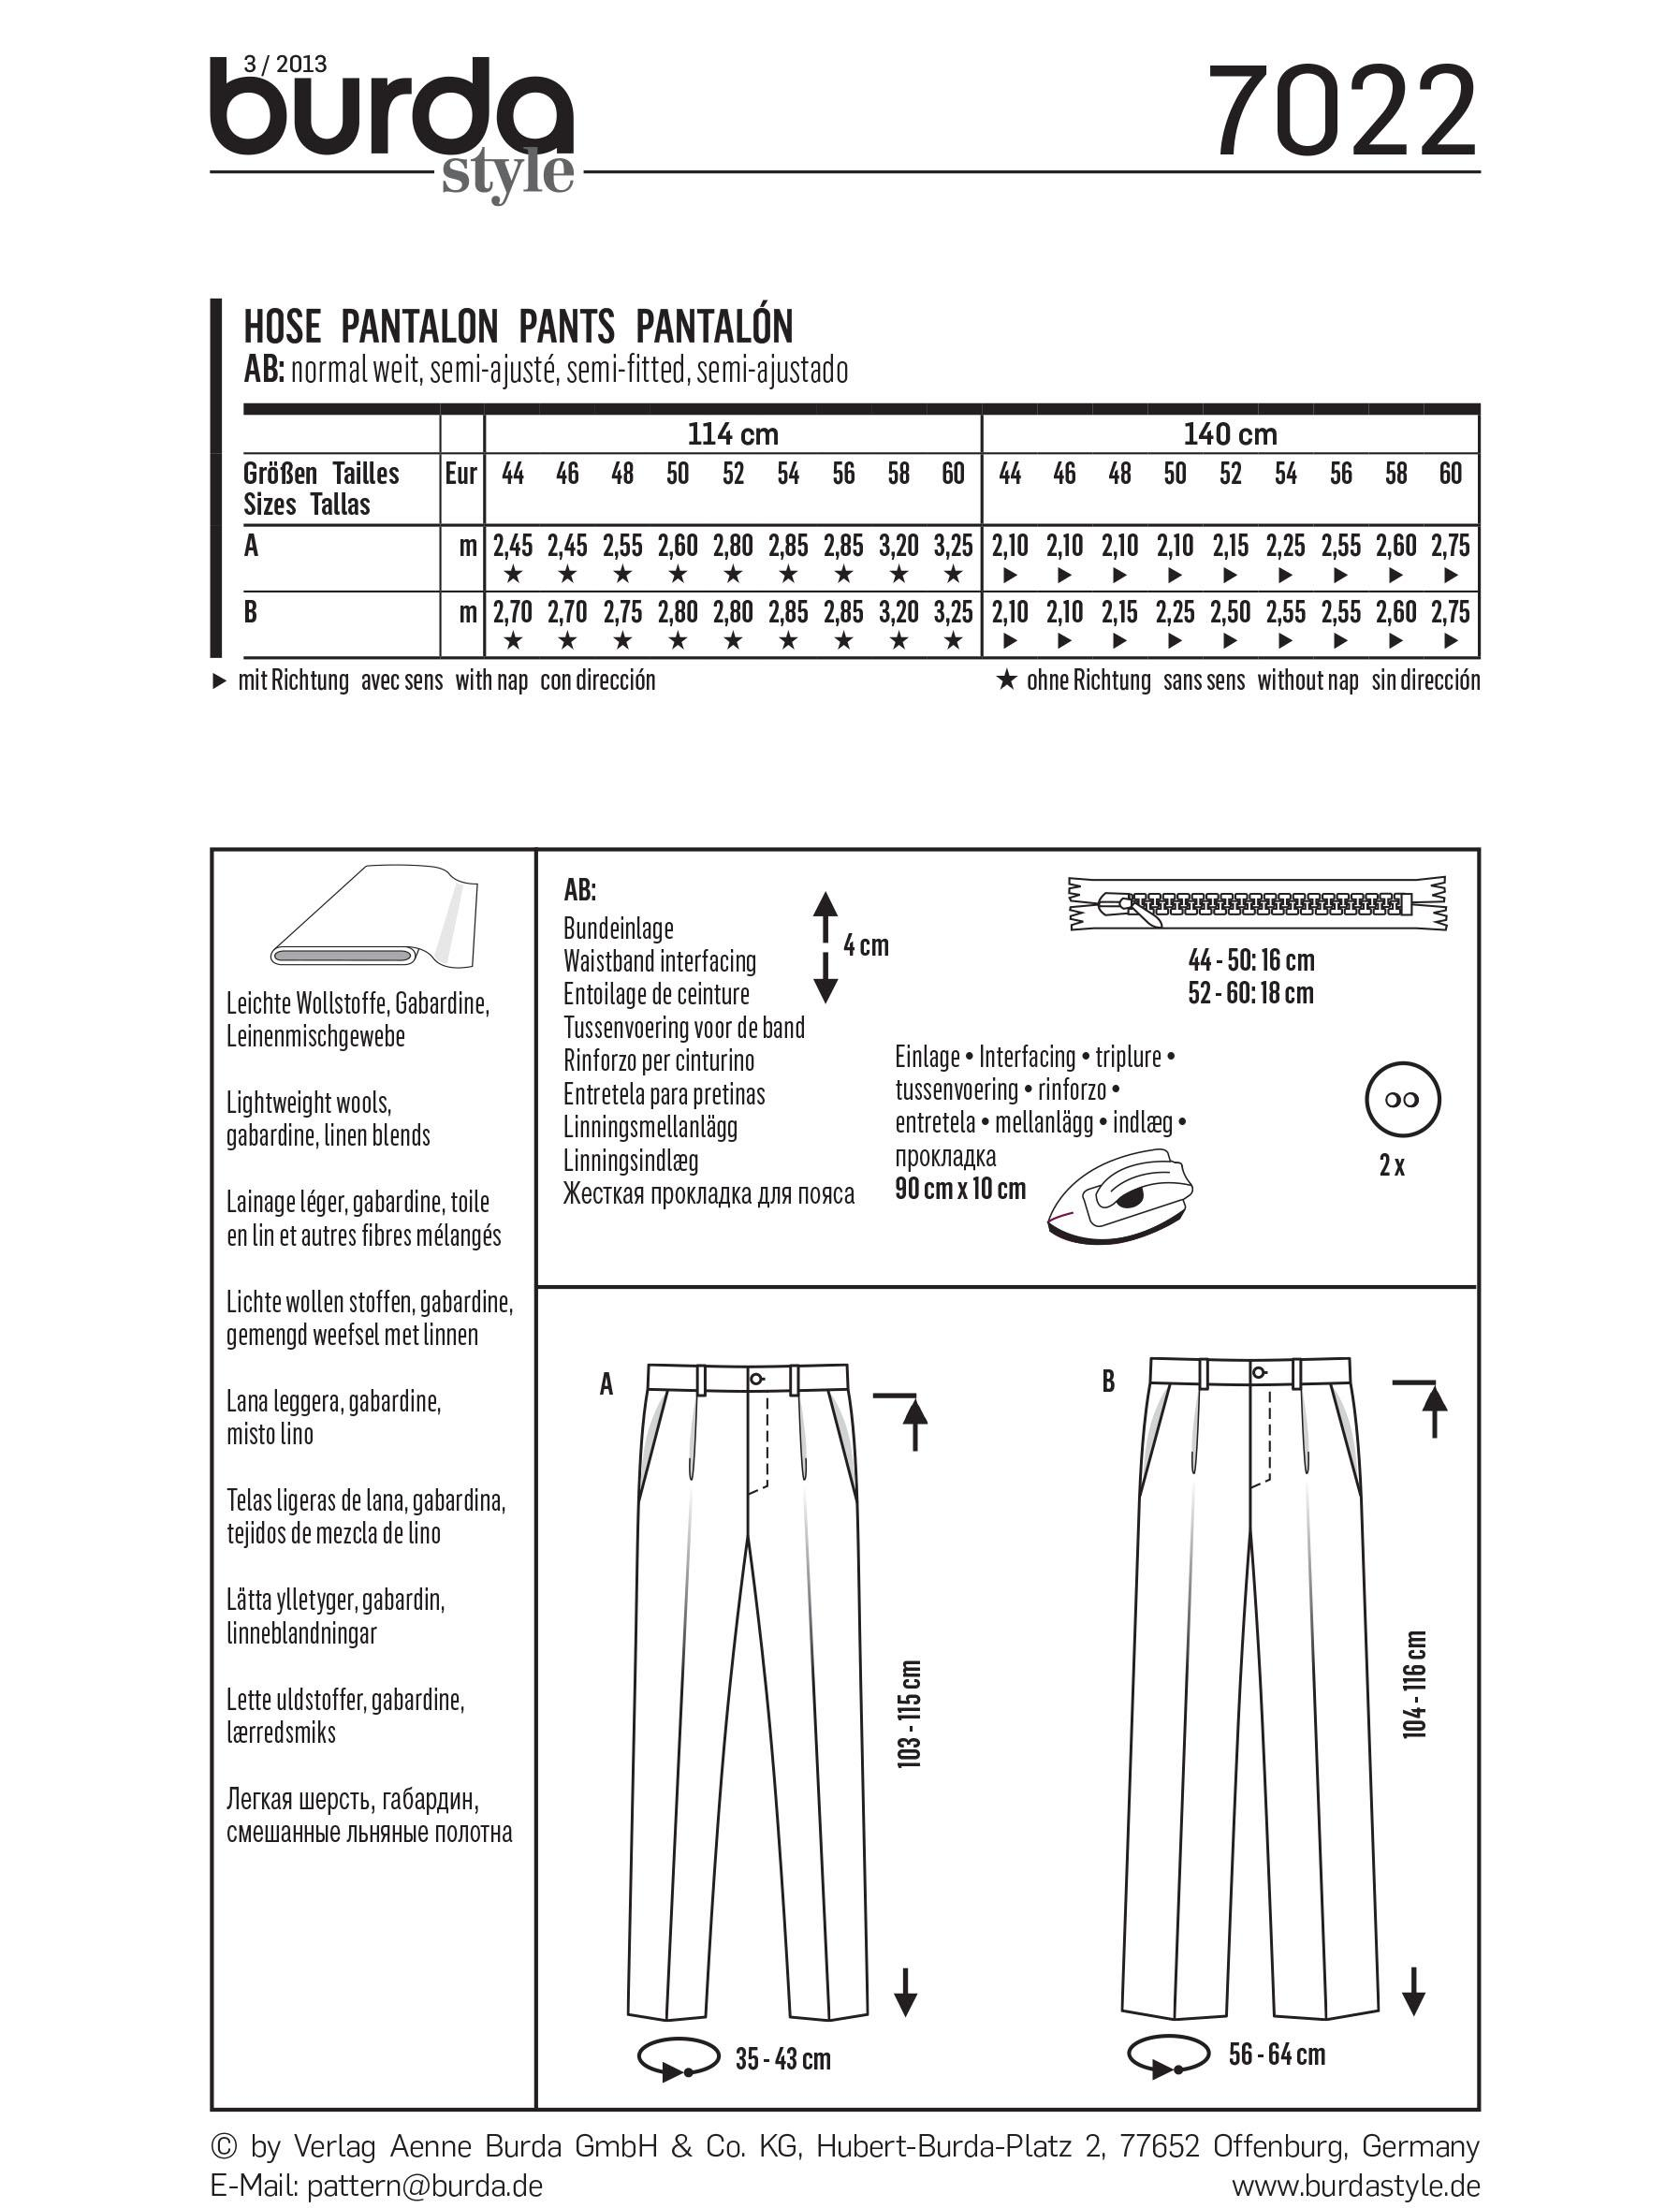 Burda B7022 Burda Trousers Sewing Pattern